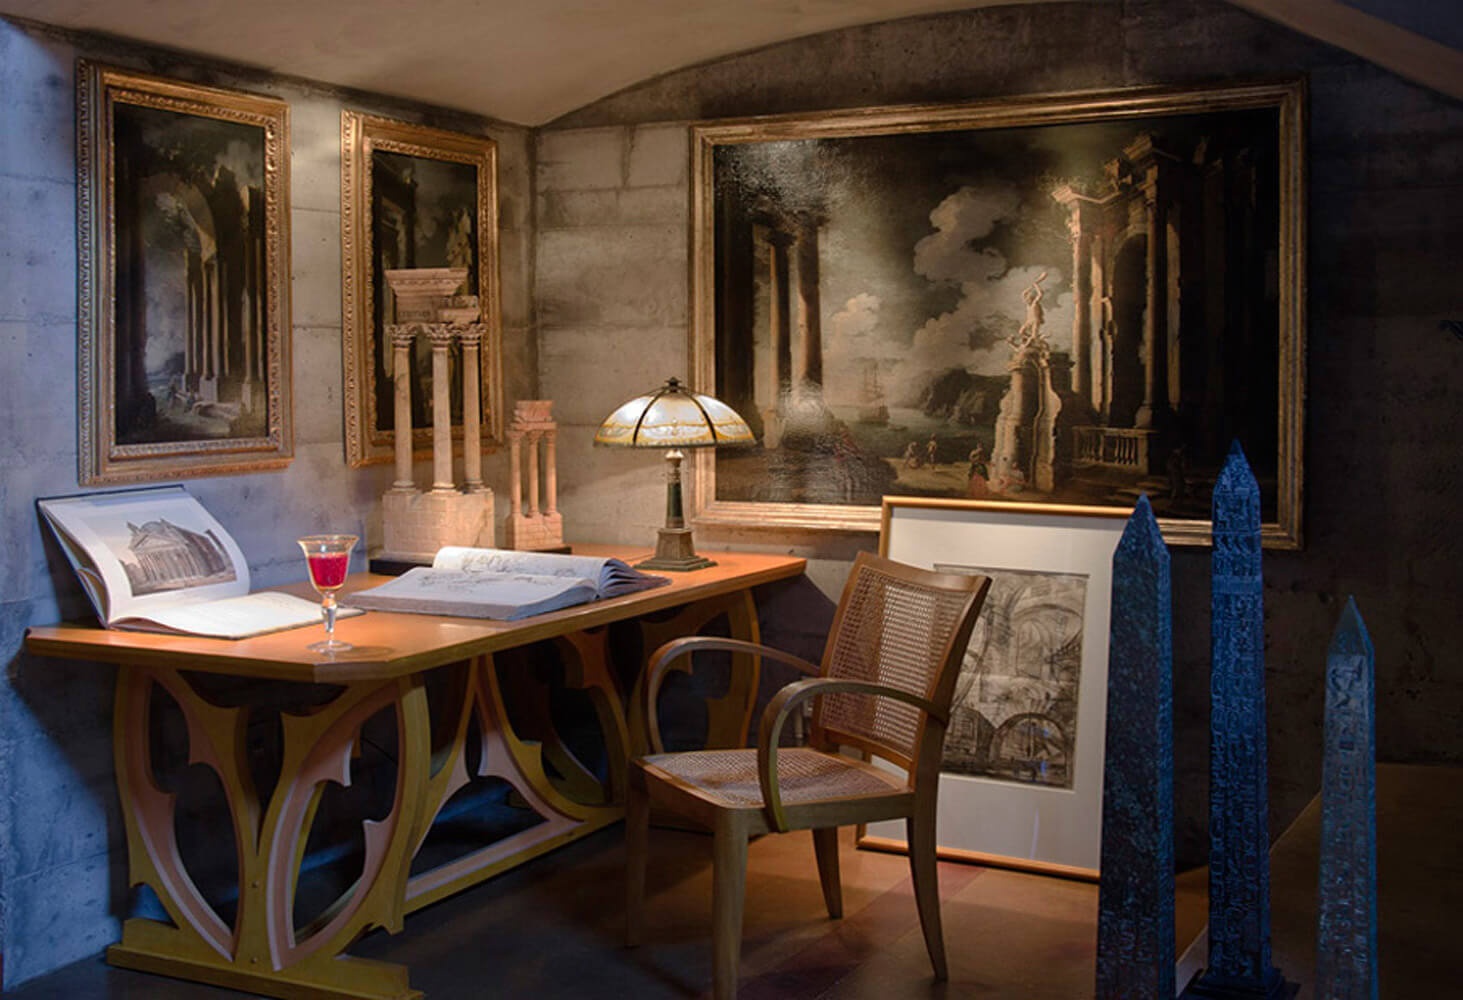 Alcove at Piraneseum with Capricci , Architectural Prints, and Grand Tour Models